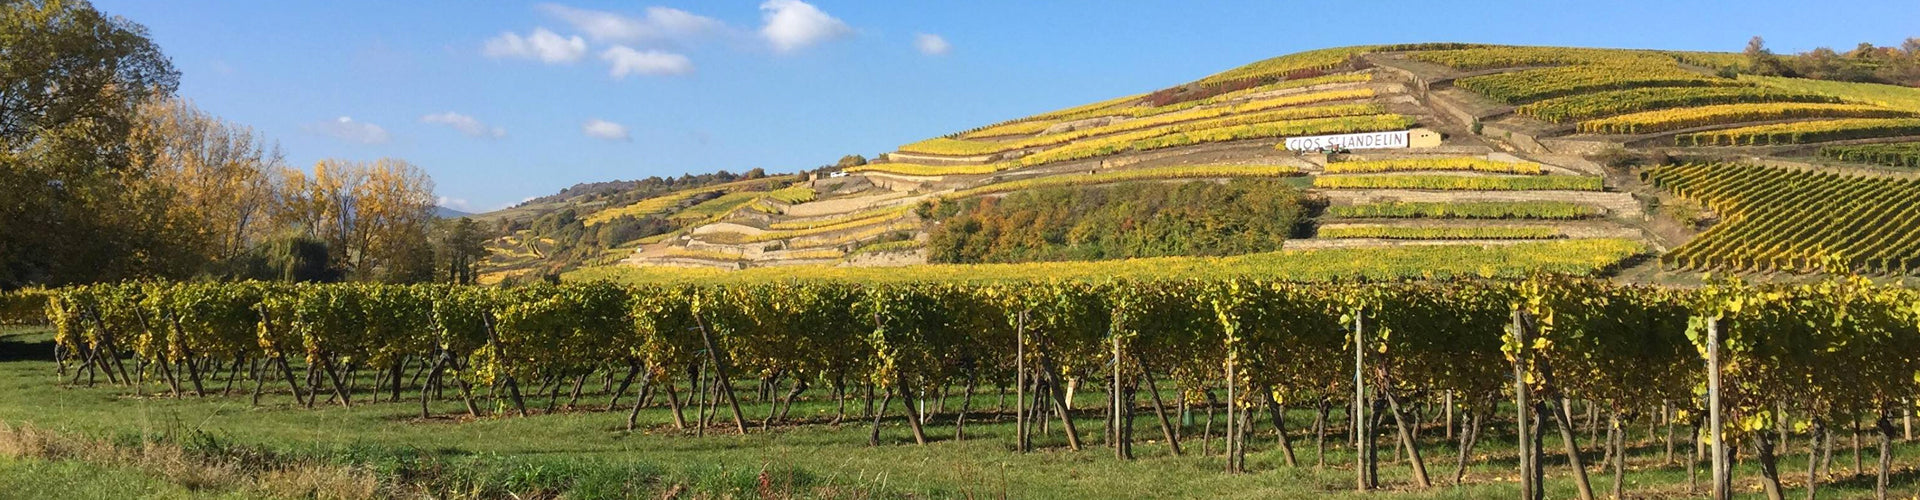 Muré Clos Saint Landelin Vineyards in Alsace